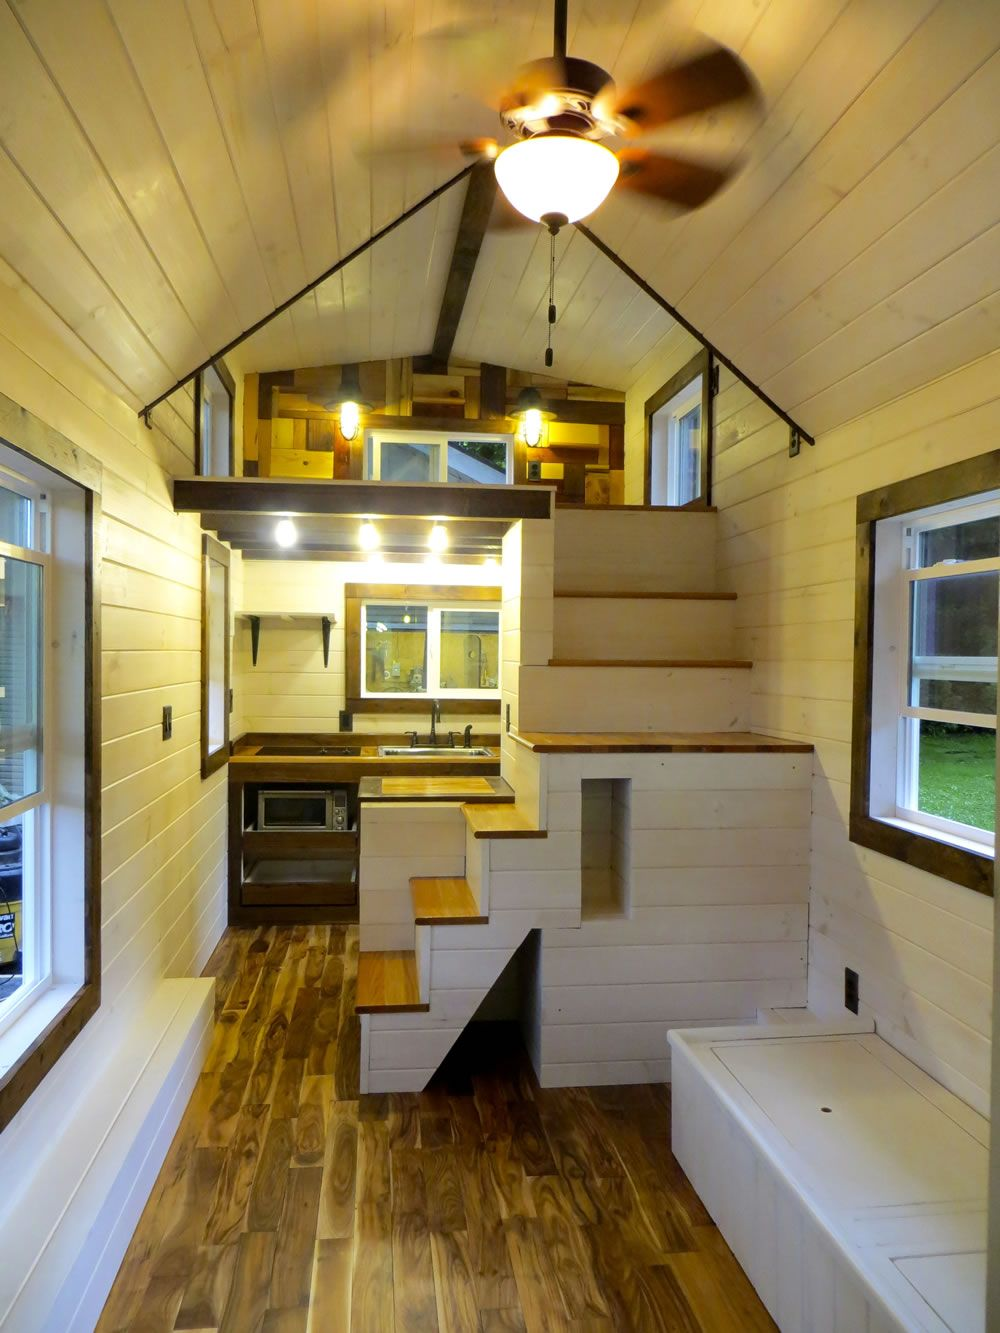 20 cozy tiny house decor ideas - Tiny House Interior Design Ideas